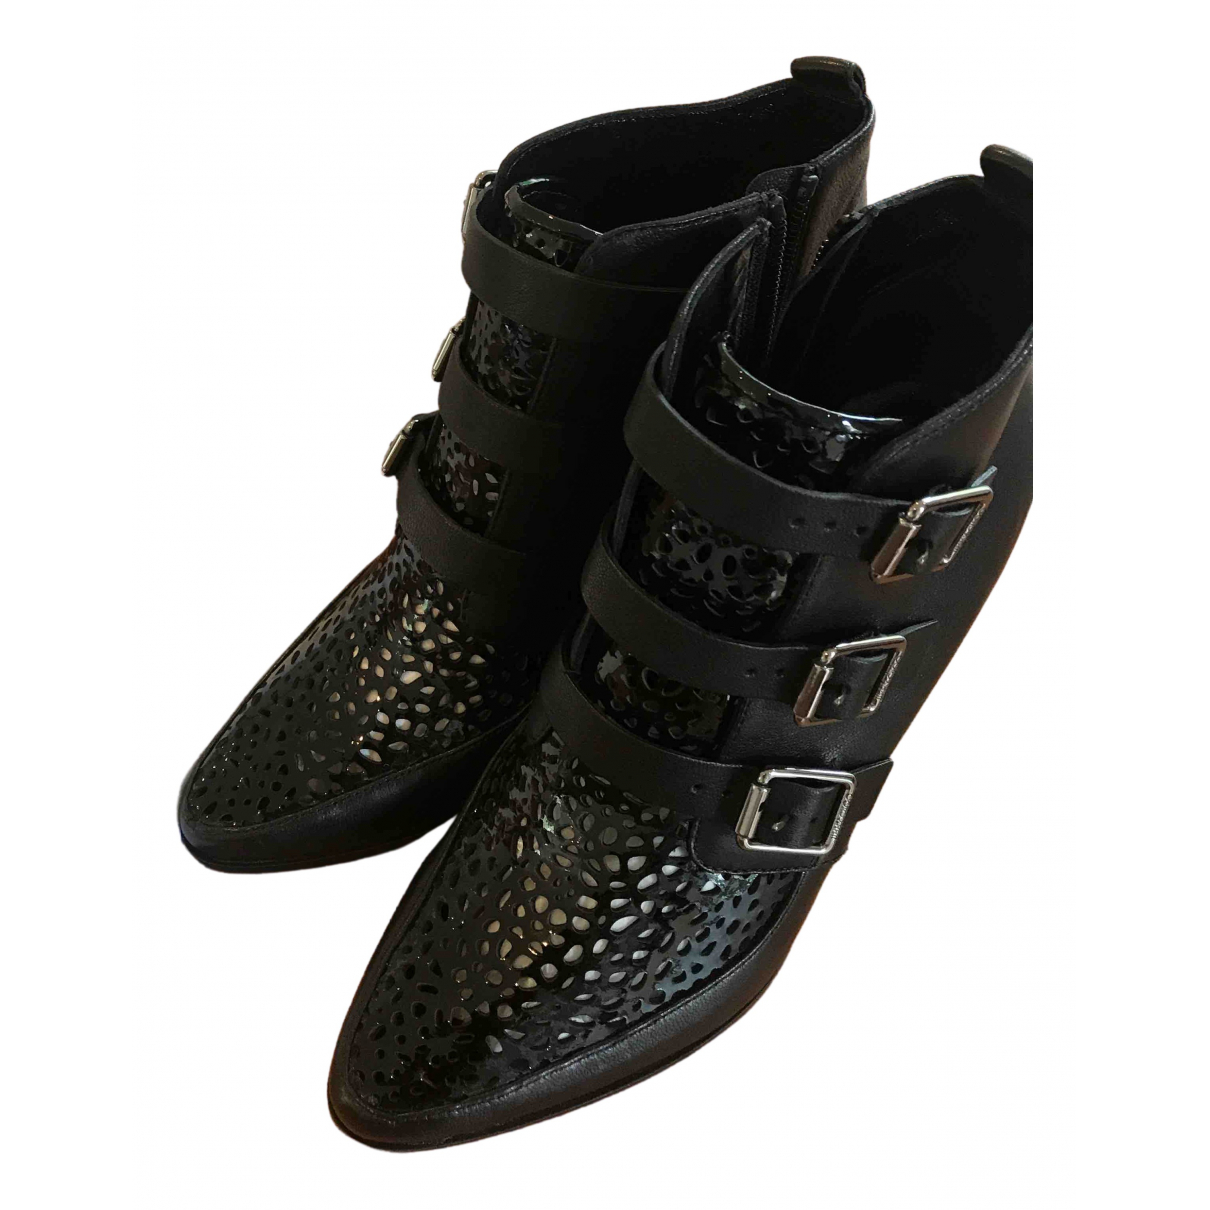 Jimmy Choo N Black Leather Ankle boots for Women 37.5 EU